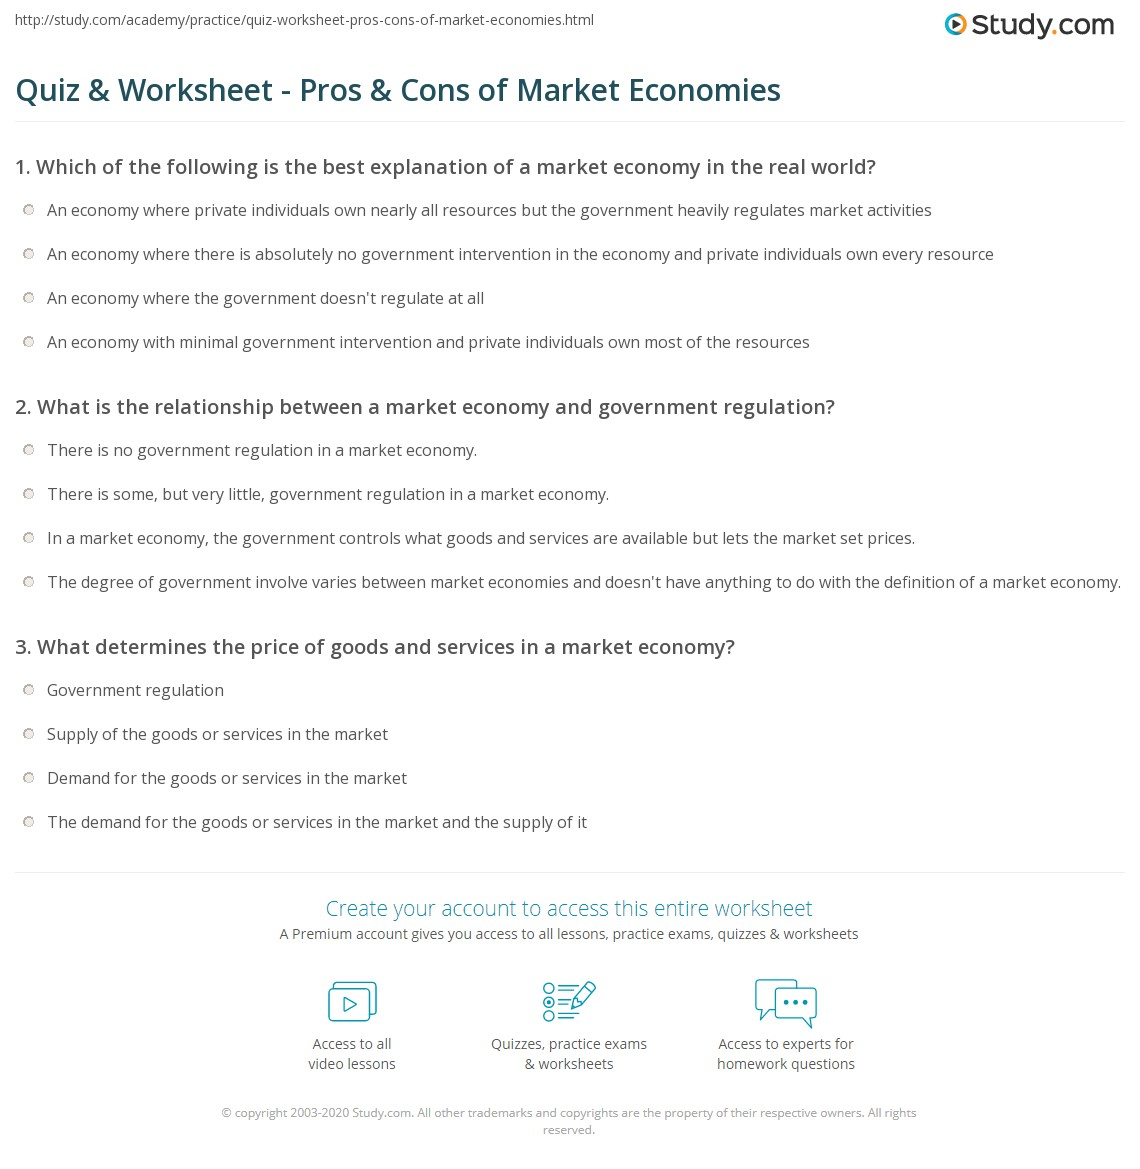 quiz worksheet pros cons of market economies. Black Bedroom Furniture Sets. Home Design Ideas